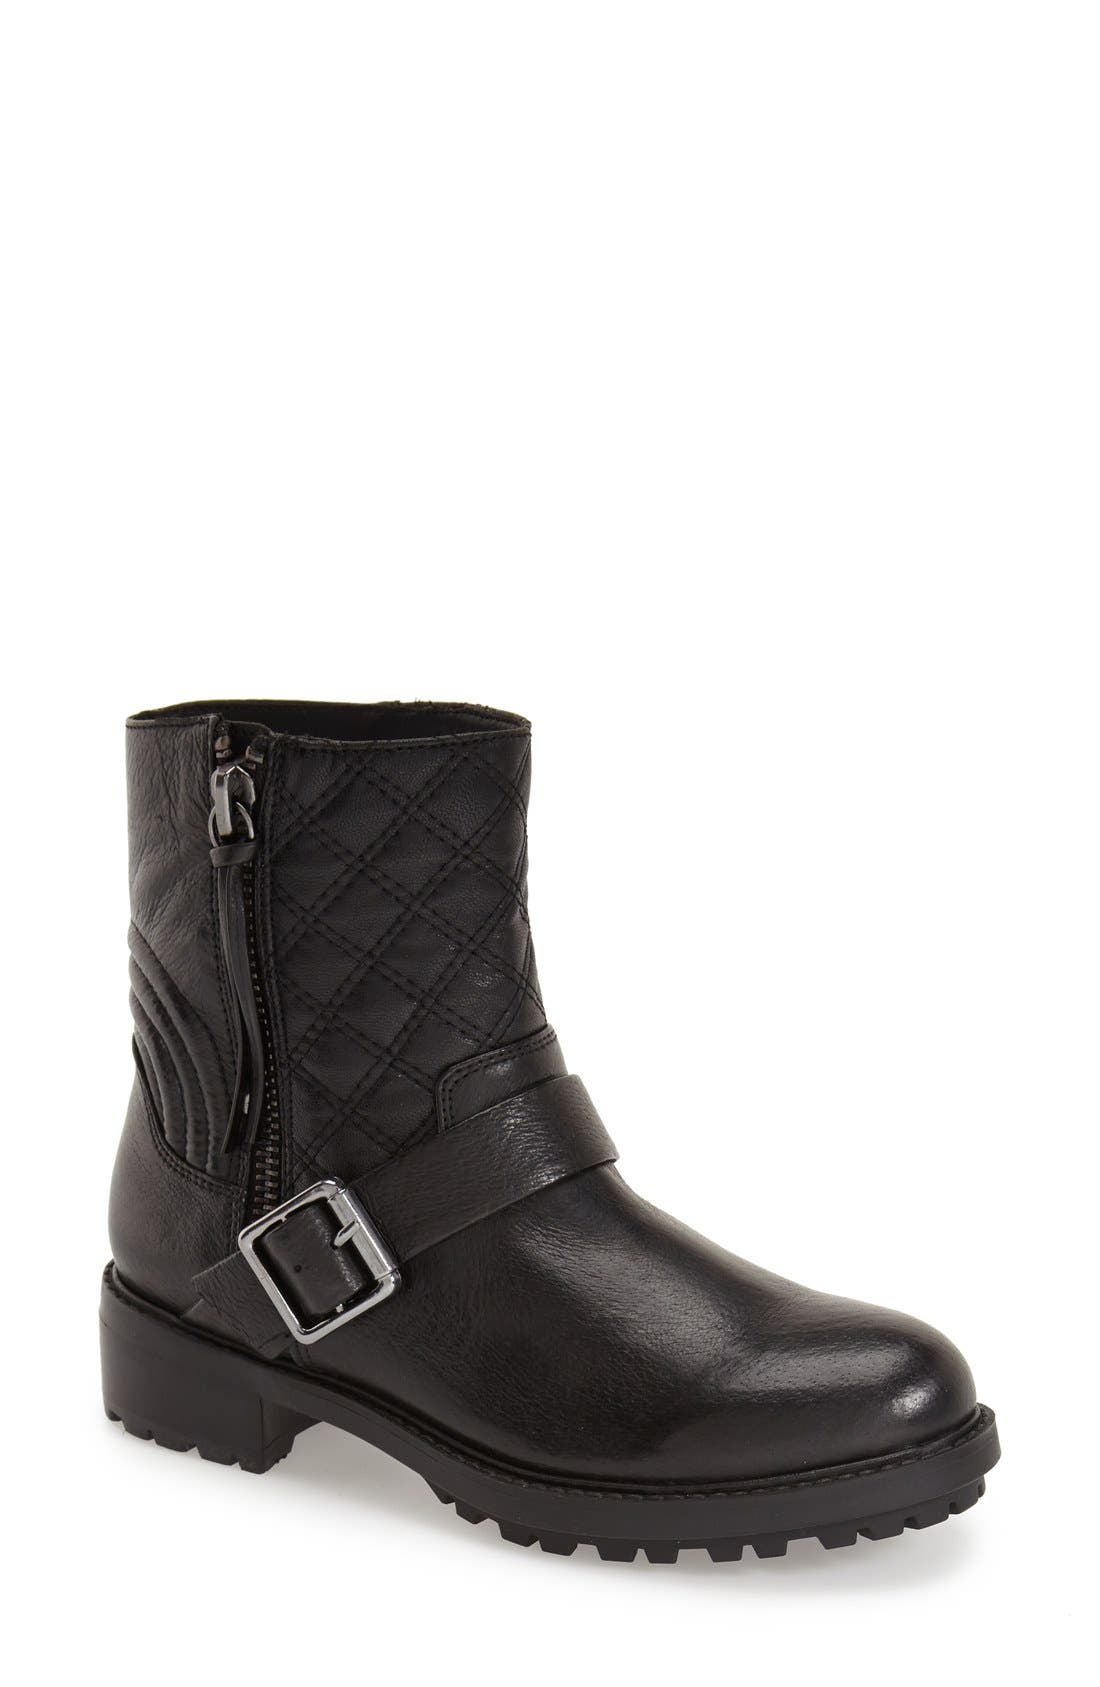 Alternate Image 1 Selected - Steve Madden 'Rivalree' Moto Boot (Women) (Special Purchase)